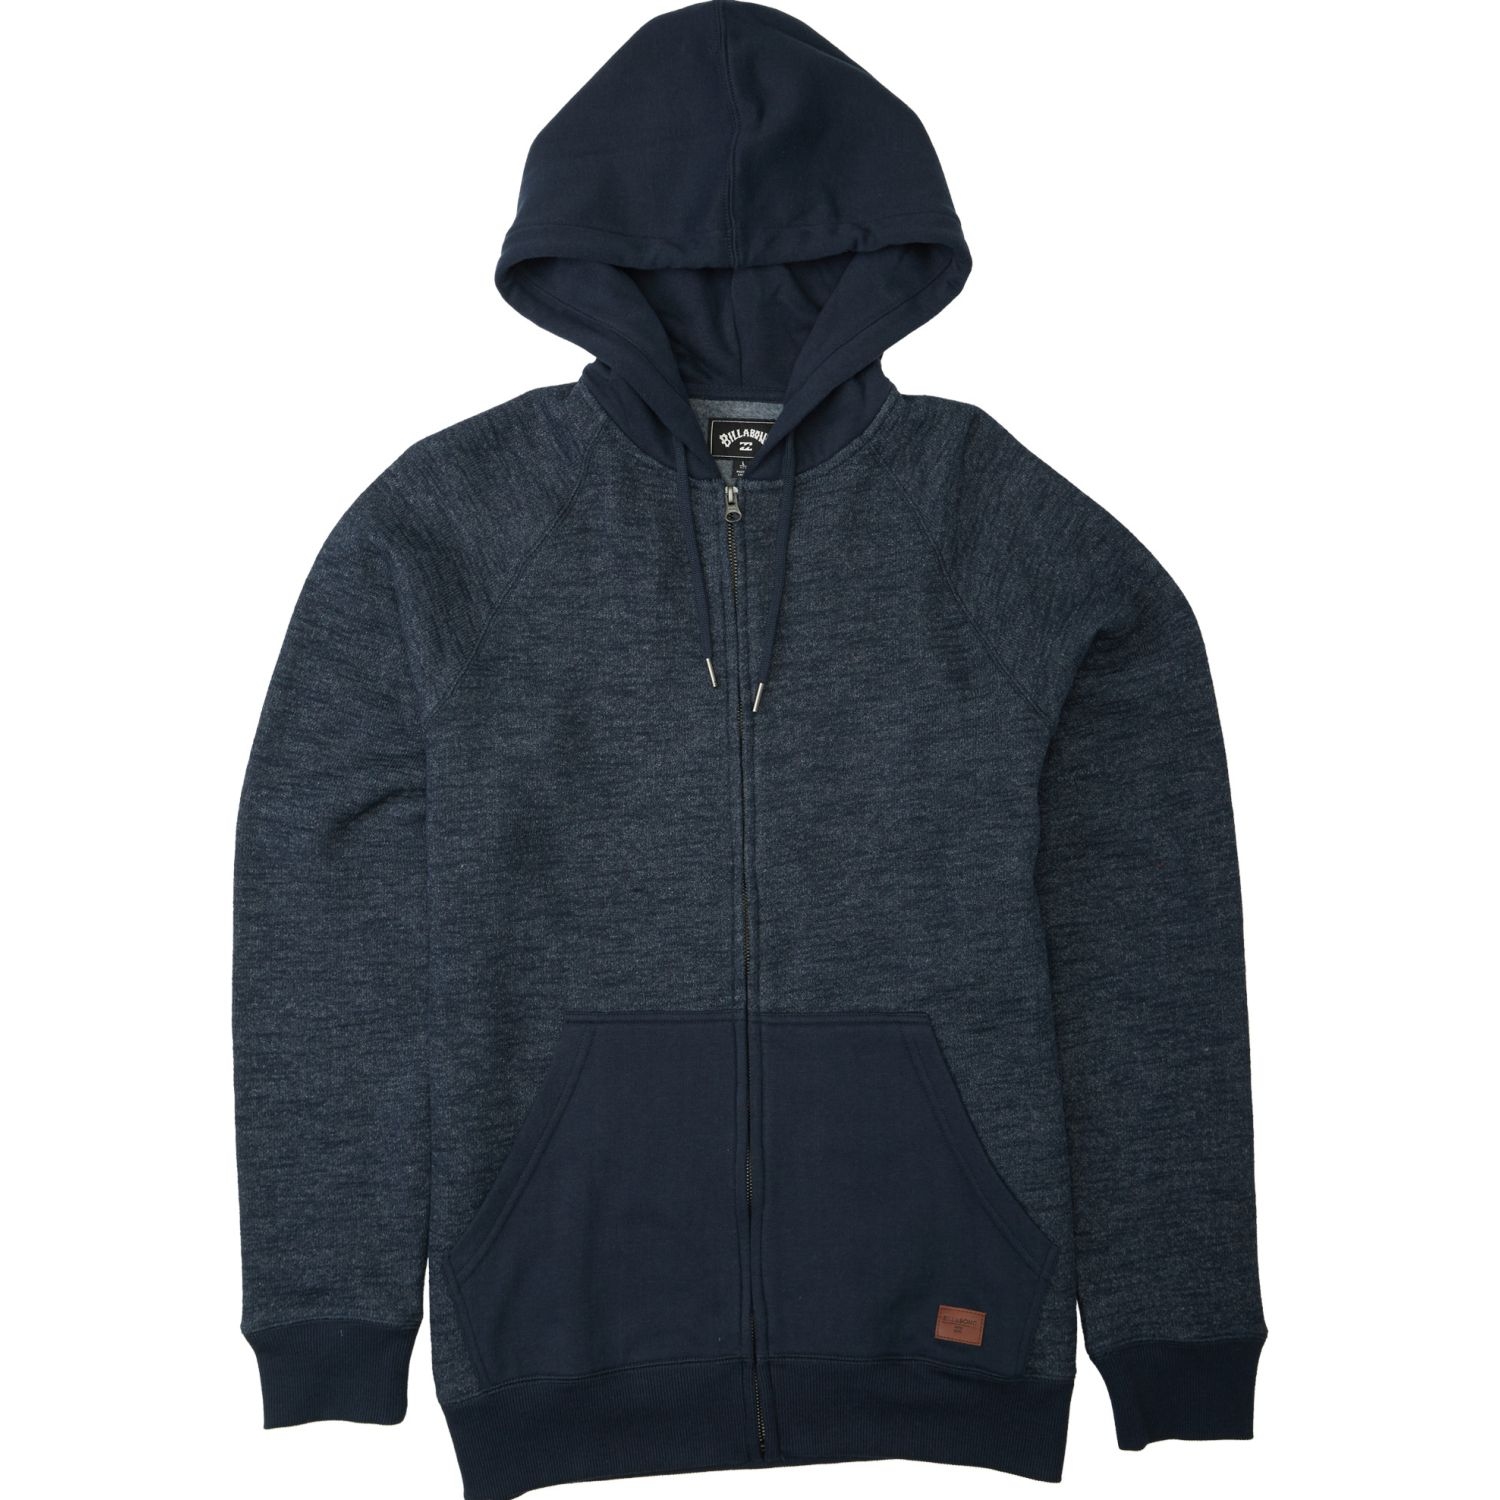 Billabong BALANCE ZIP HDY Navy Hoodies y Sweaters Fashion